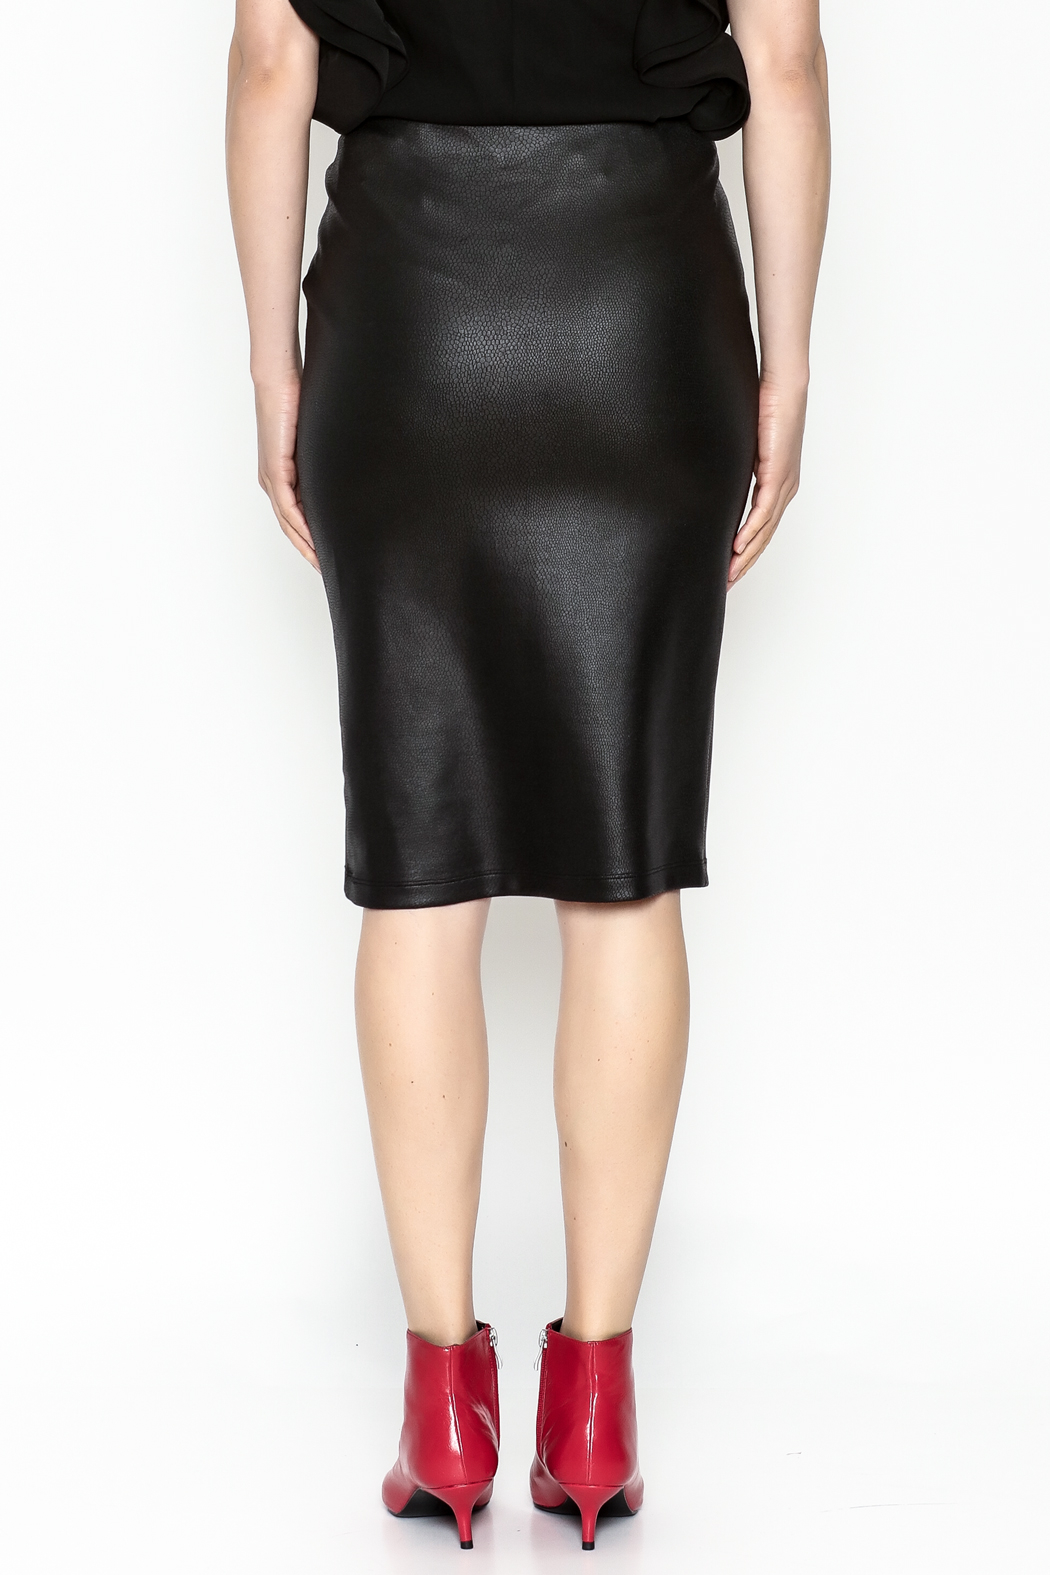 Jack by BB Dakota Chloe Snakeskin Skirt - Back Cropped Image